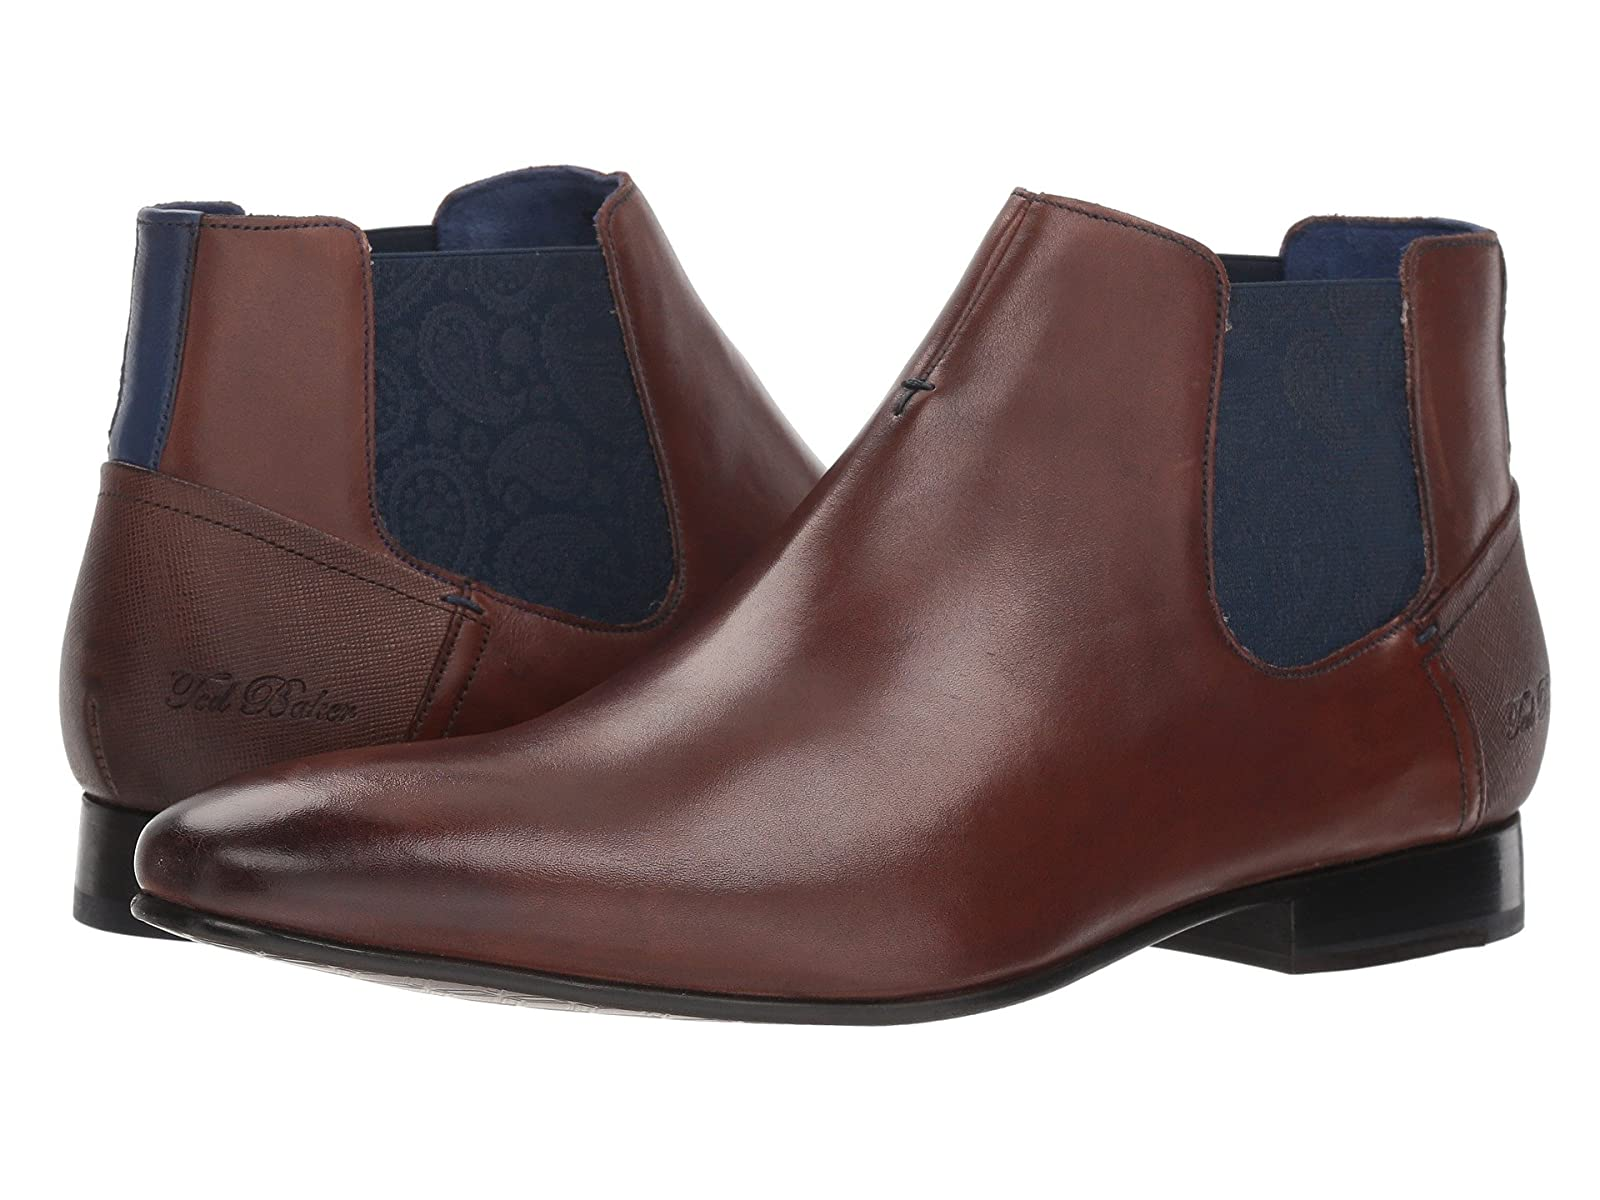 Ted Baker LowpezEconomical and quality shoes